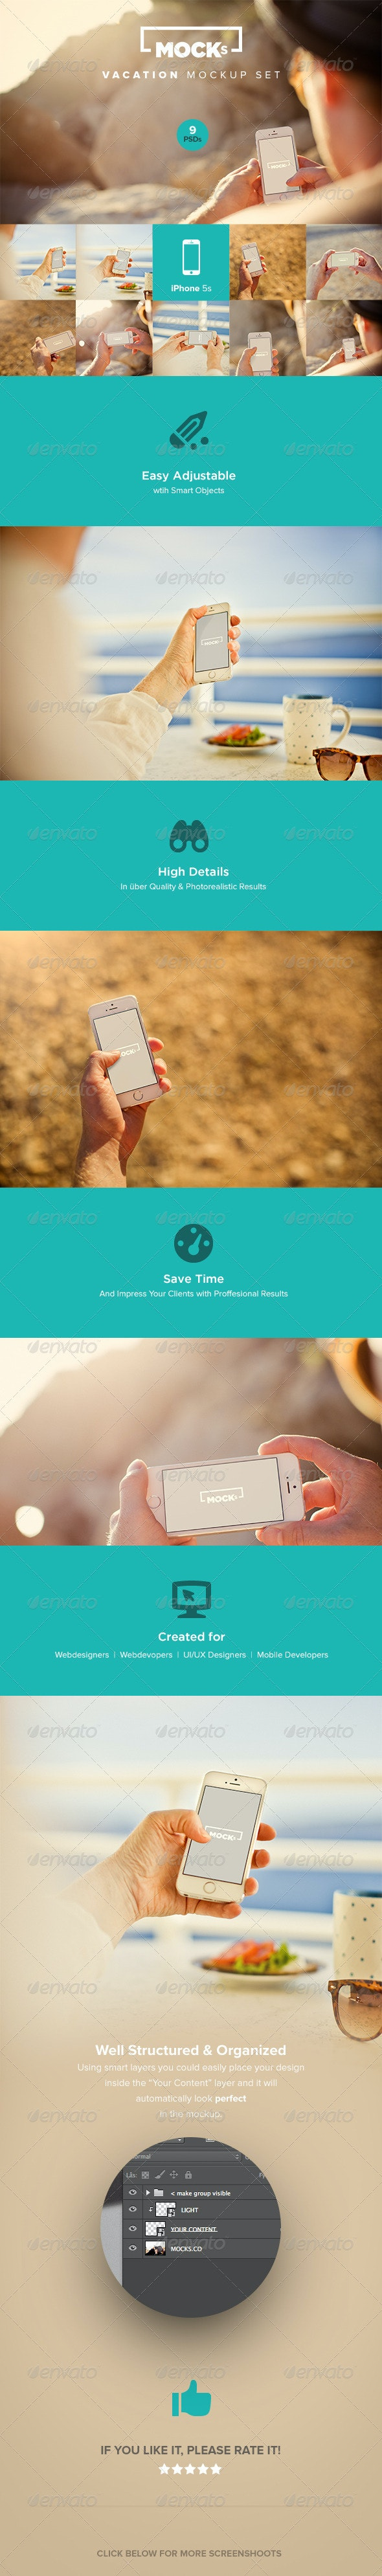 Photorealistic iPhone Mockup Templates - Mobile Displays